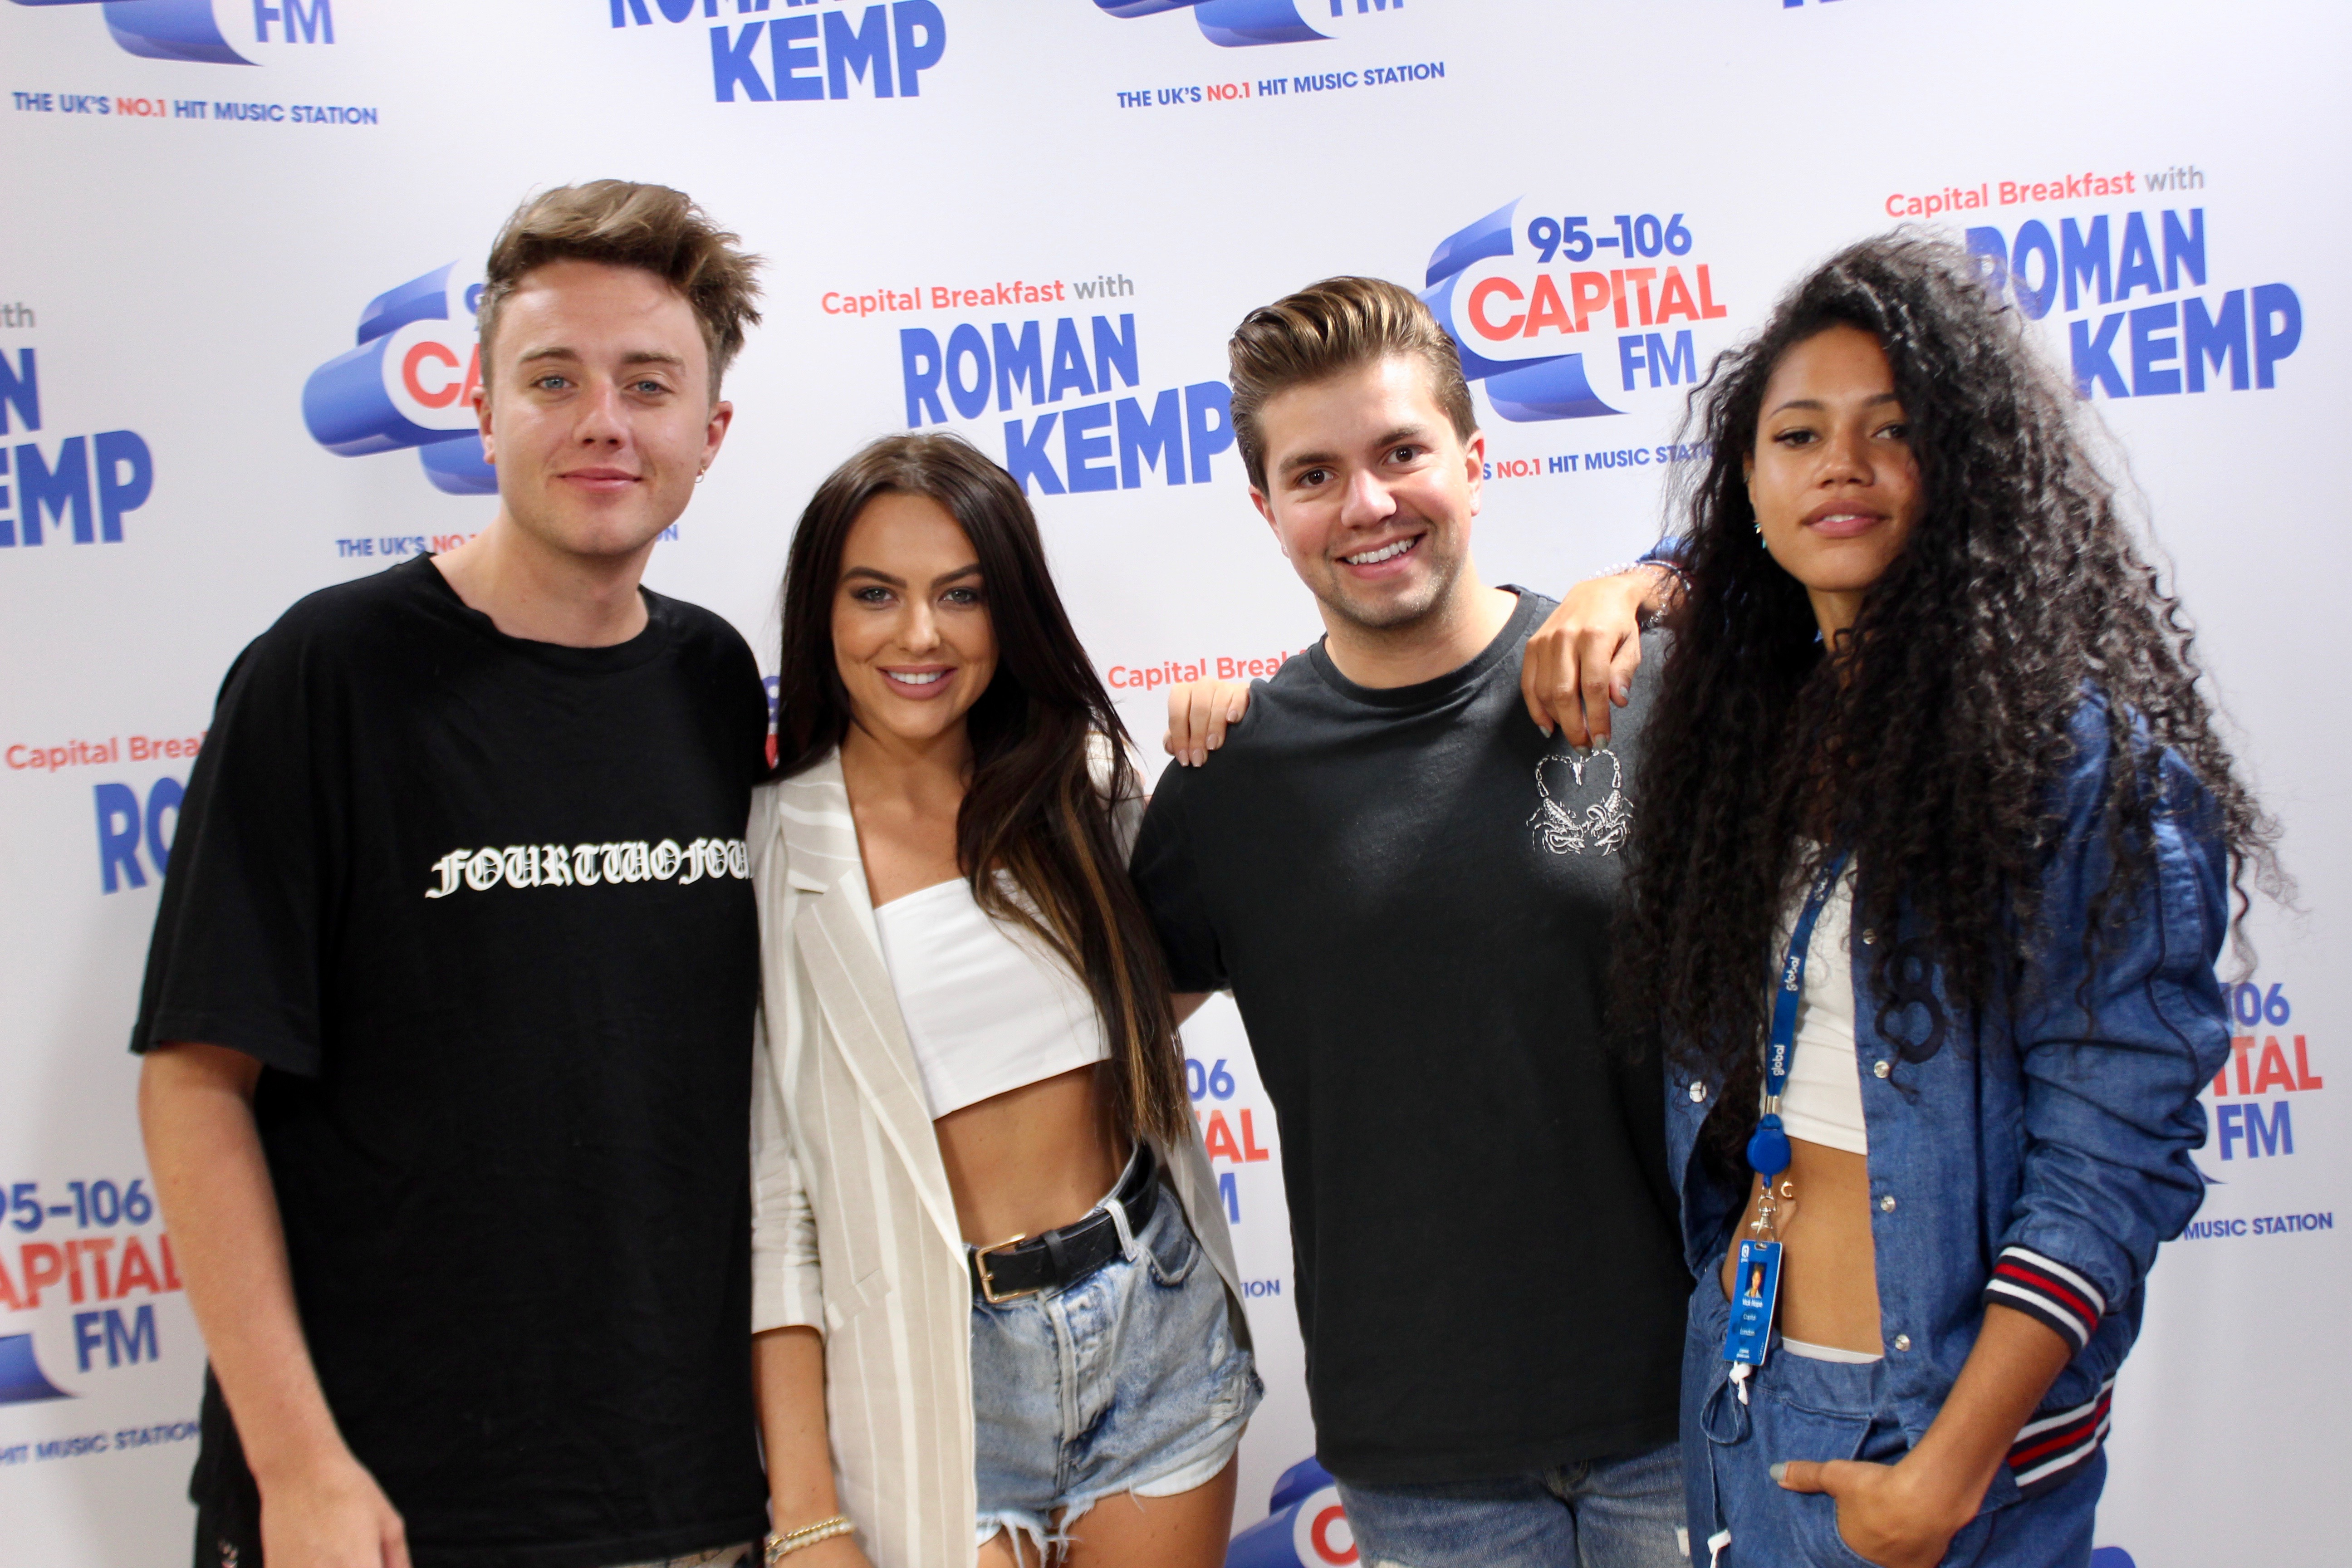 Rosie Williams on Capital Breakfast w/ Roman Kemp